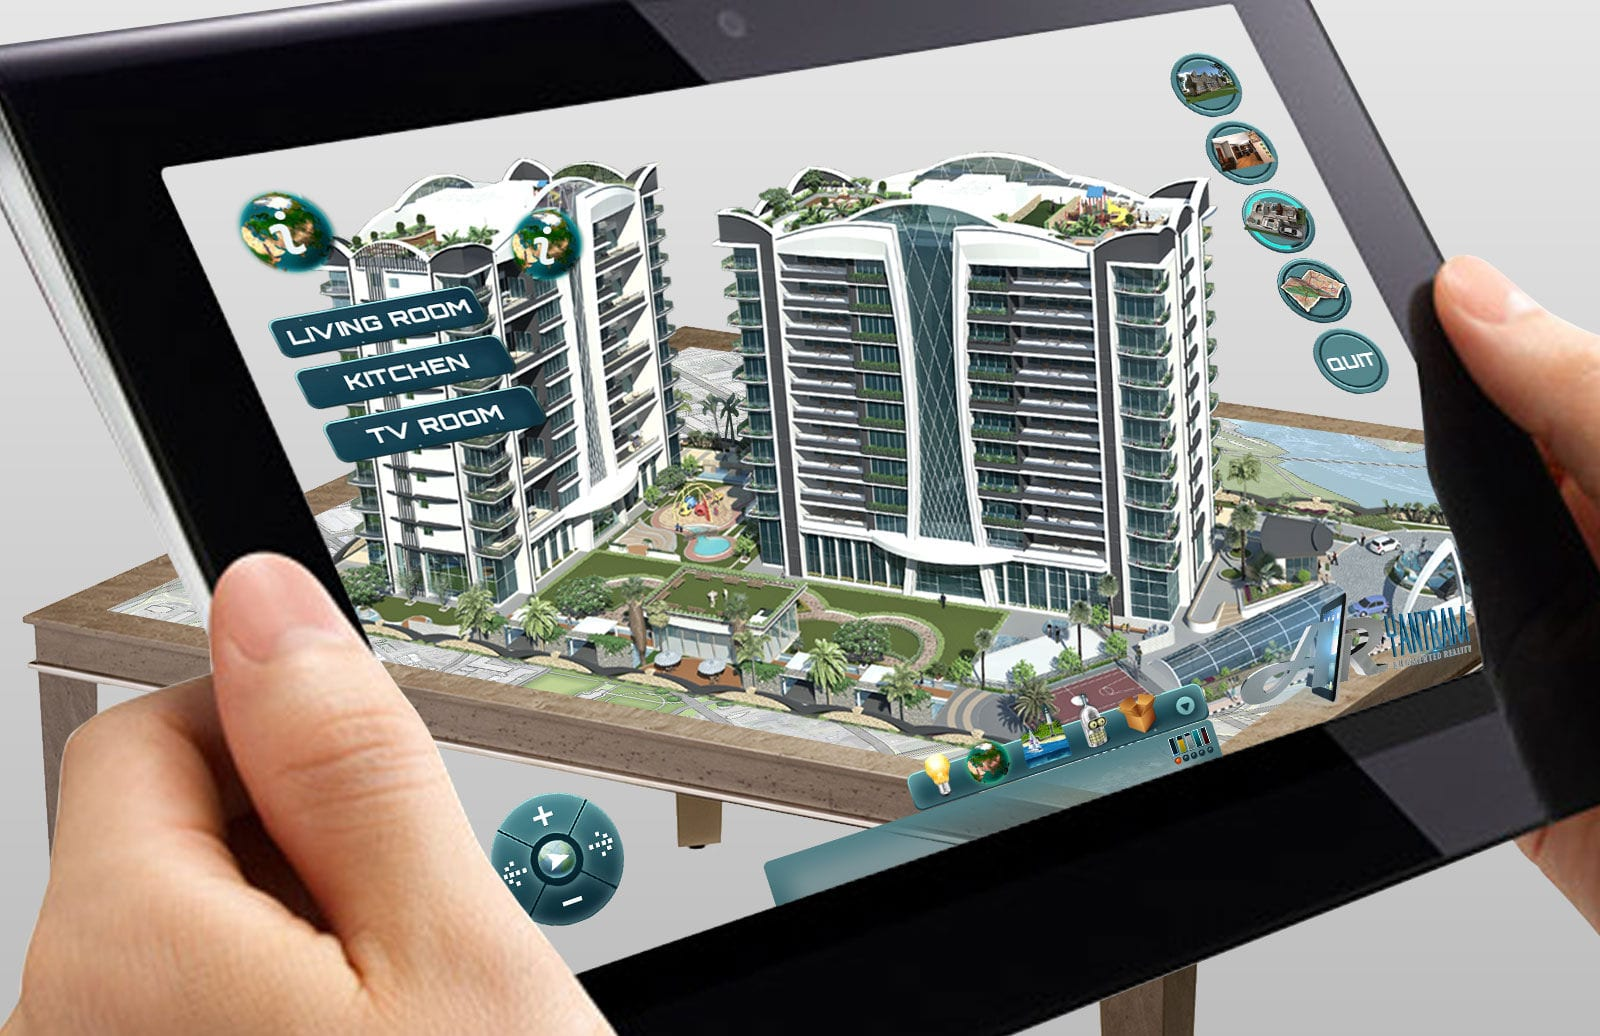 Tech Swap: An Augmented Reality App to Replace the Owner's Manual